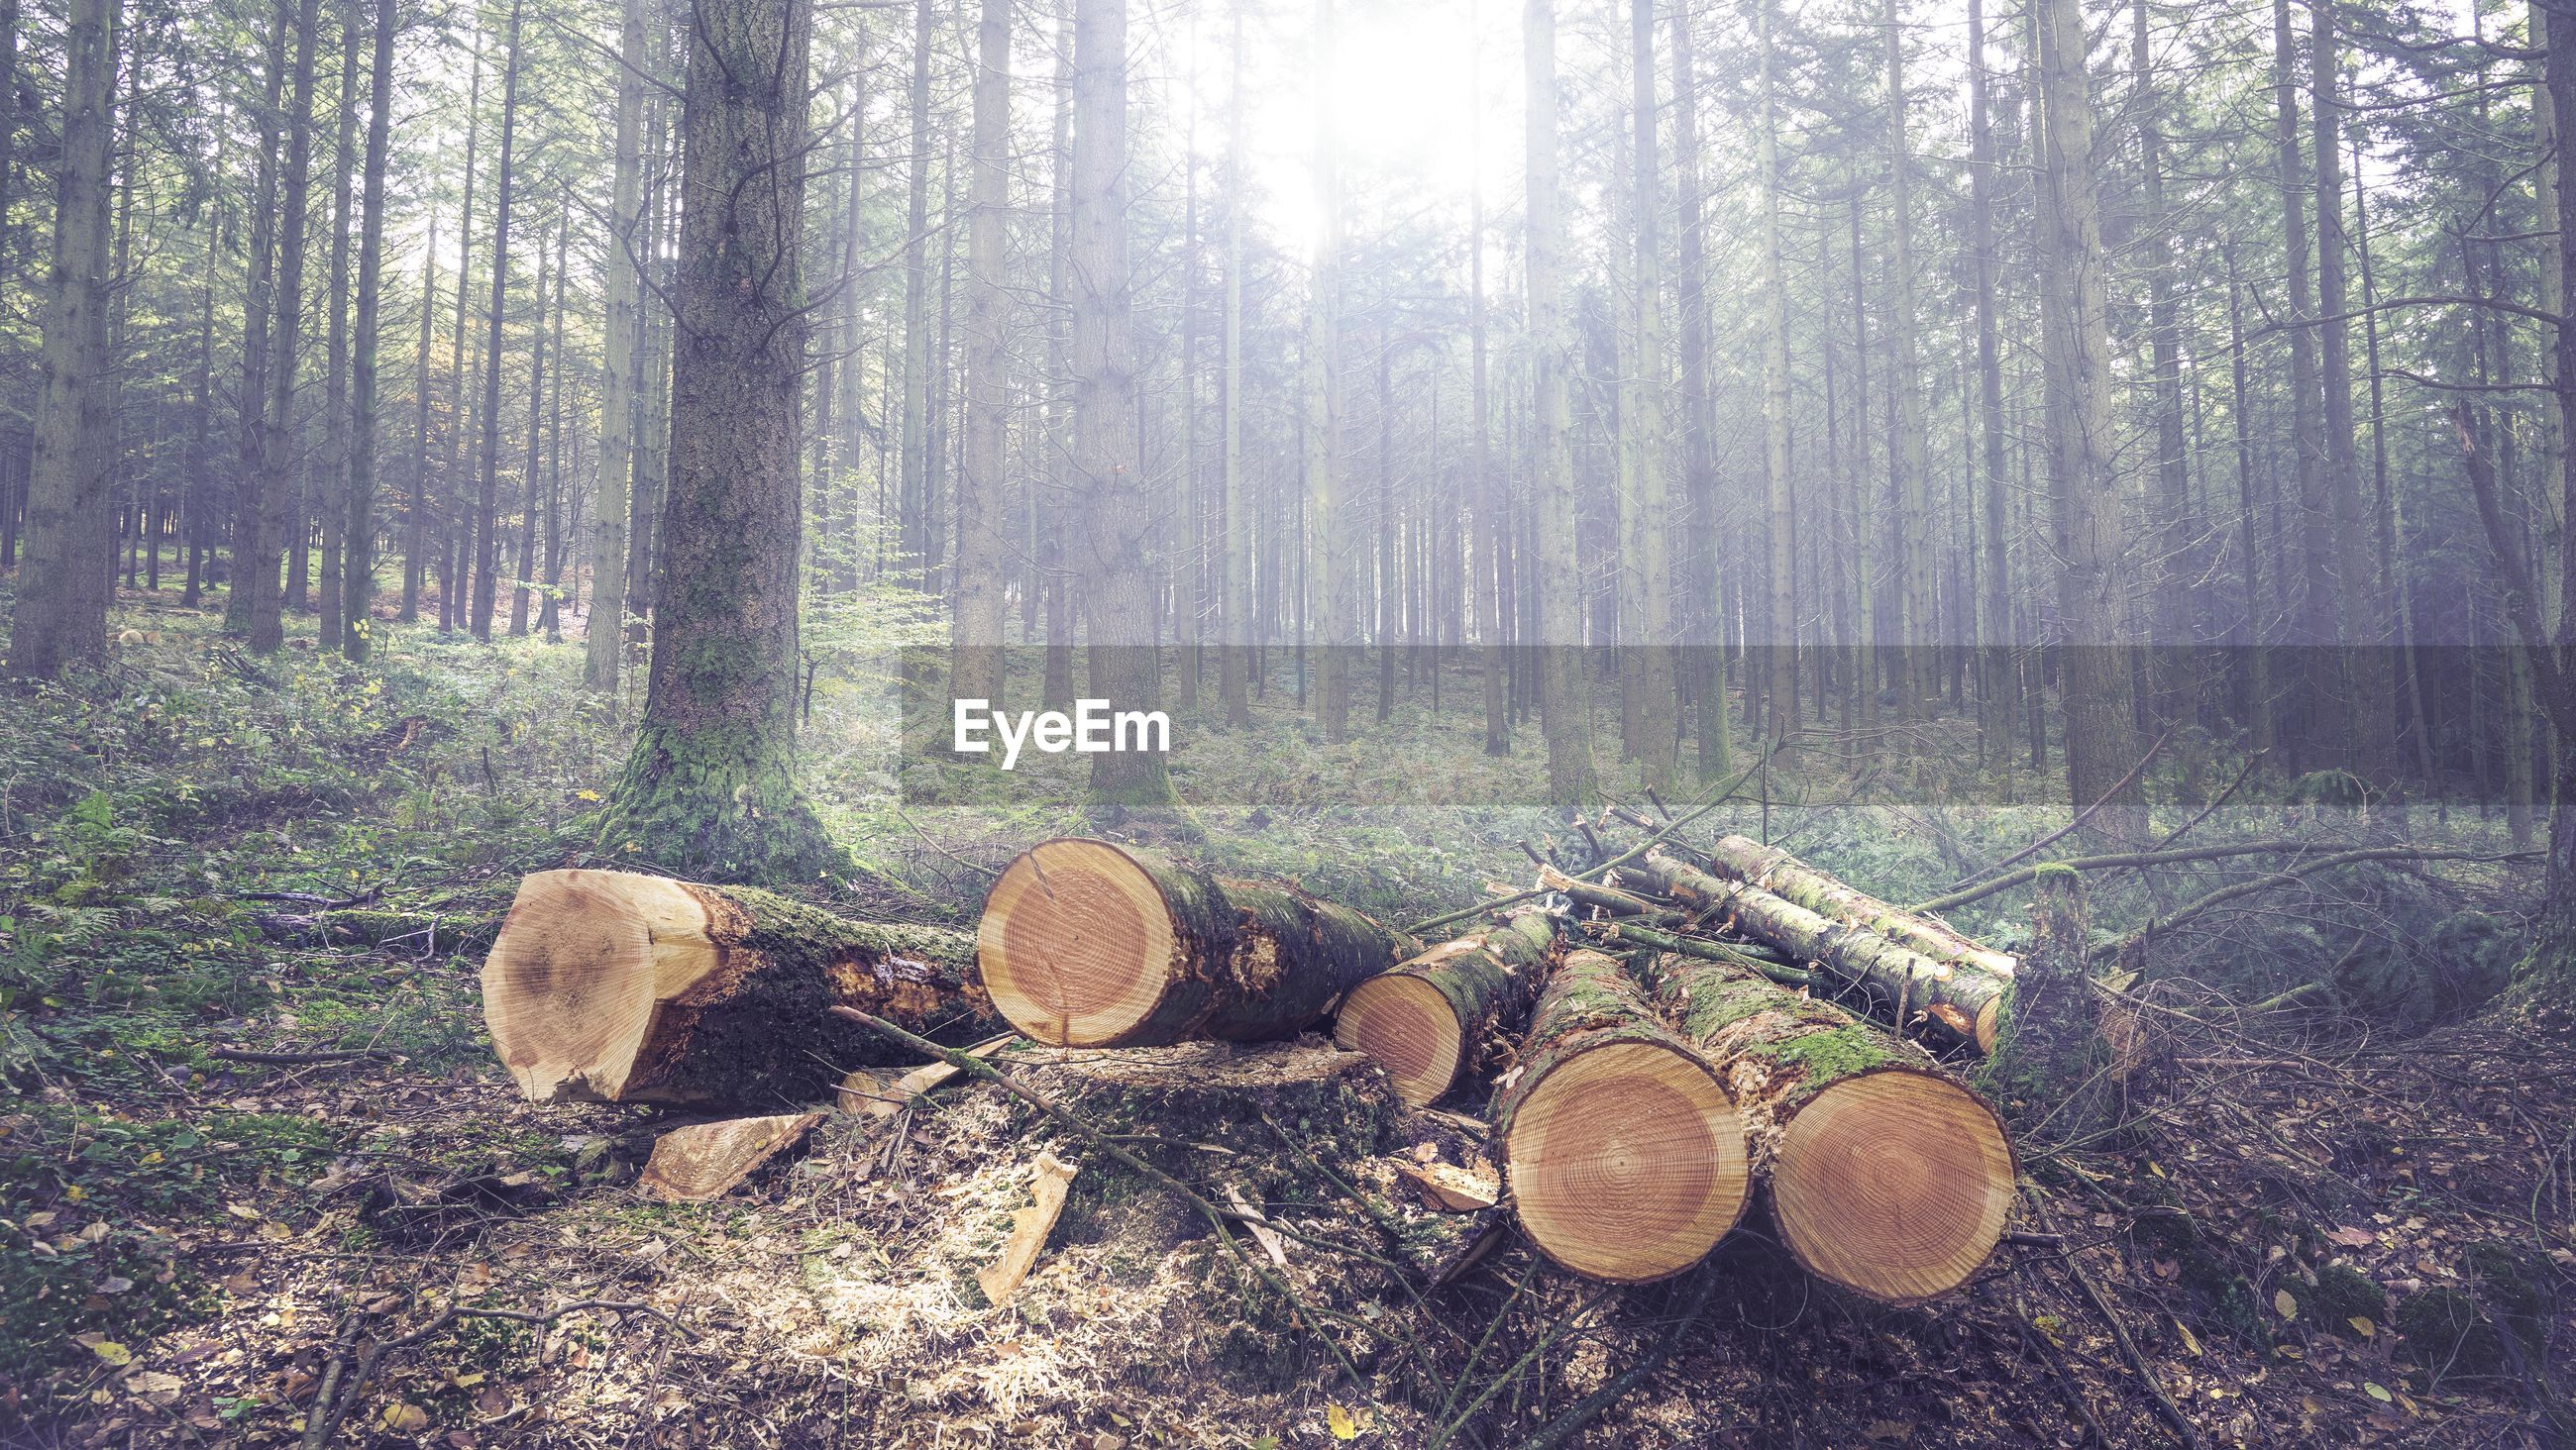 tree, forest, tree trunk, tranquility, growth, nature, woodland, abundance, tranquil scene, wood - material, large group of objects, field, landscape, day, stack, no people, deforestation, beauty in nature, sunlight, outdoors